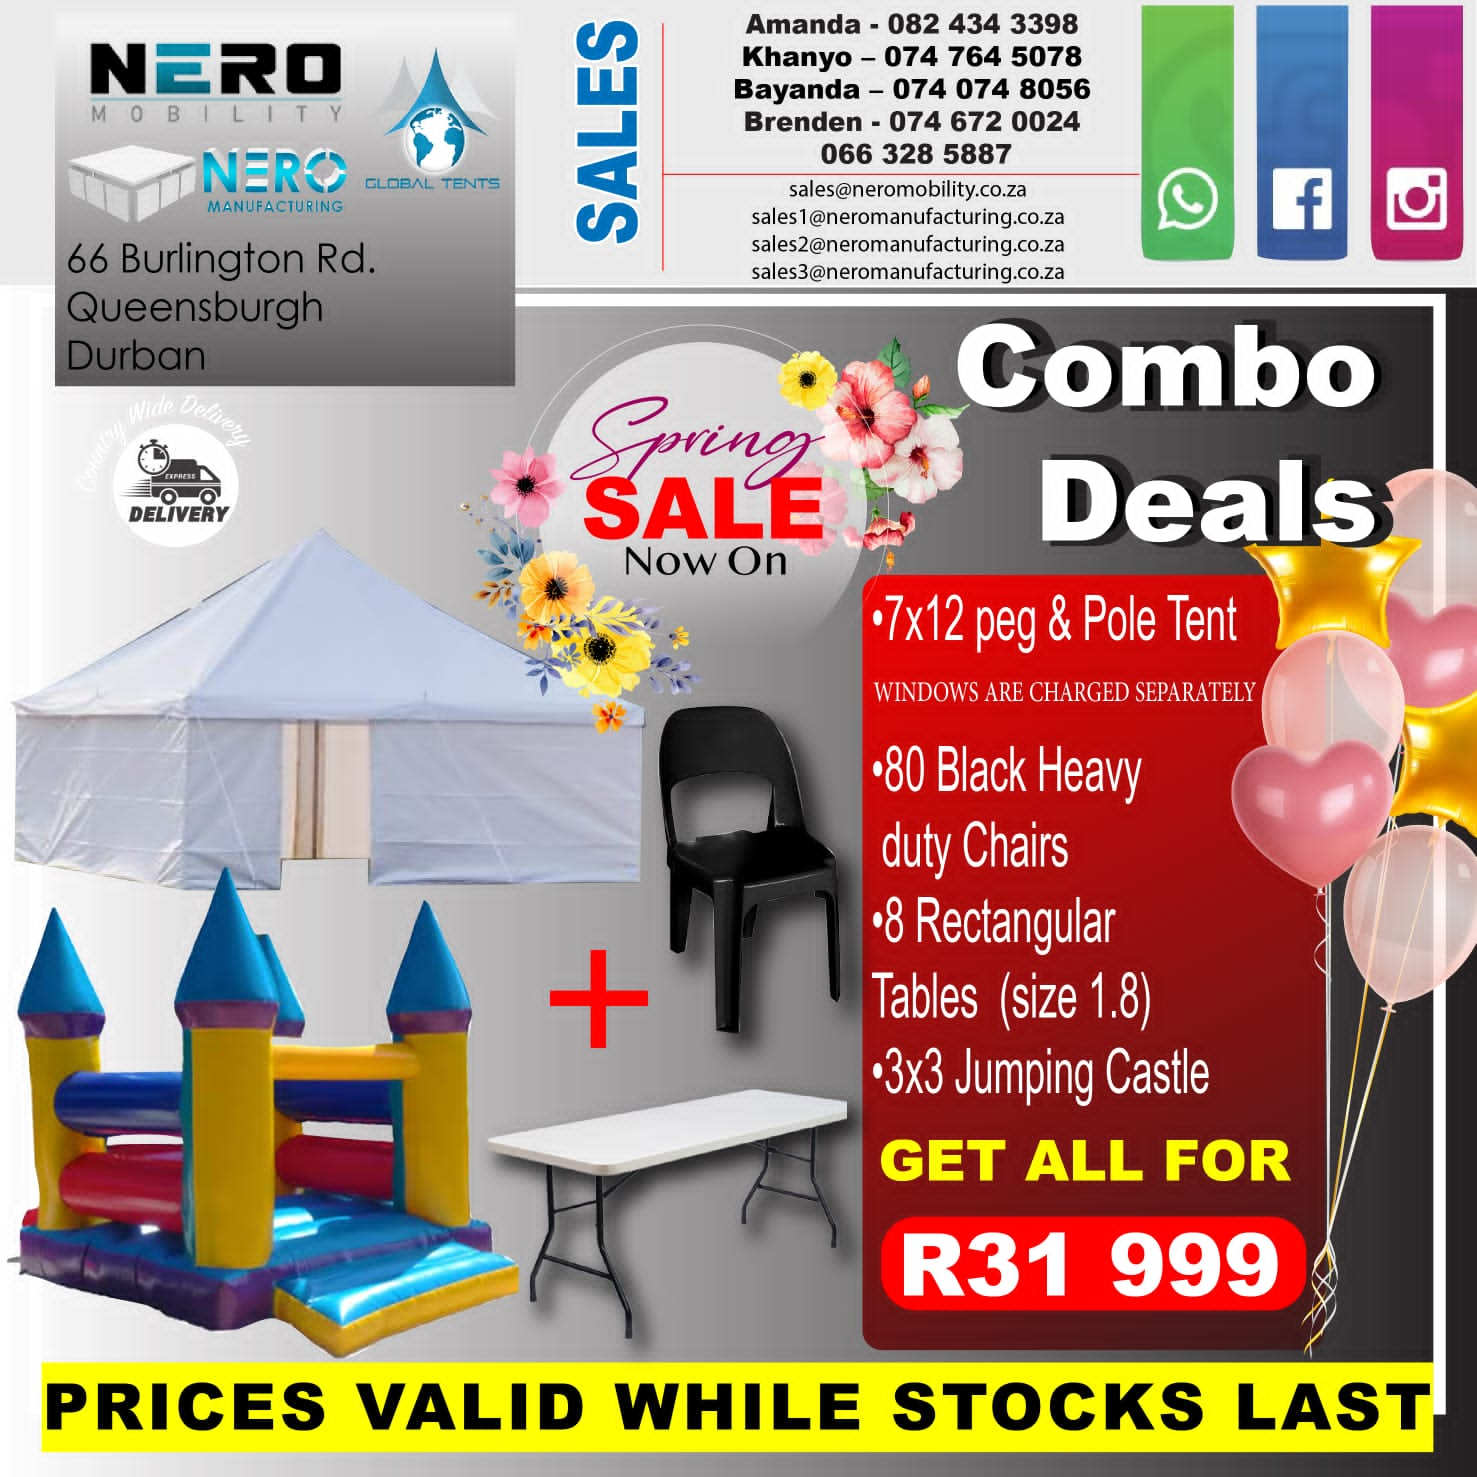 7x12 peg & pole tent spring combo deal